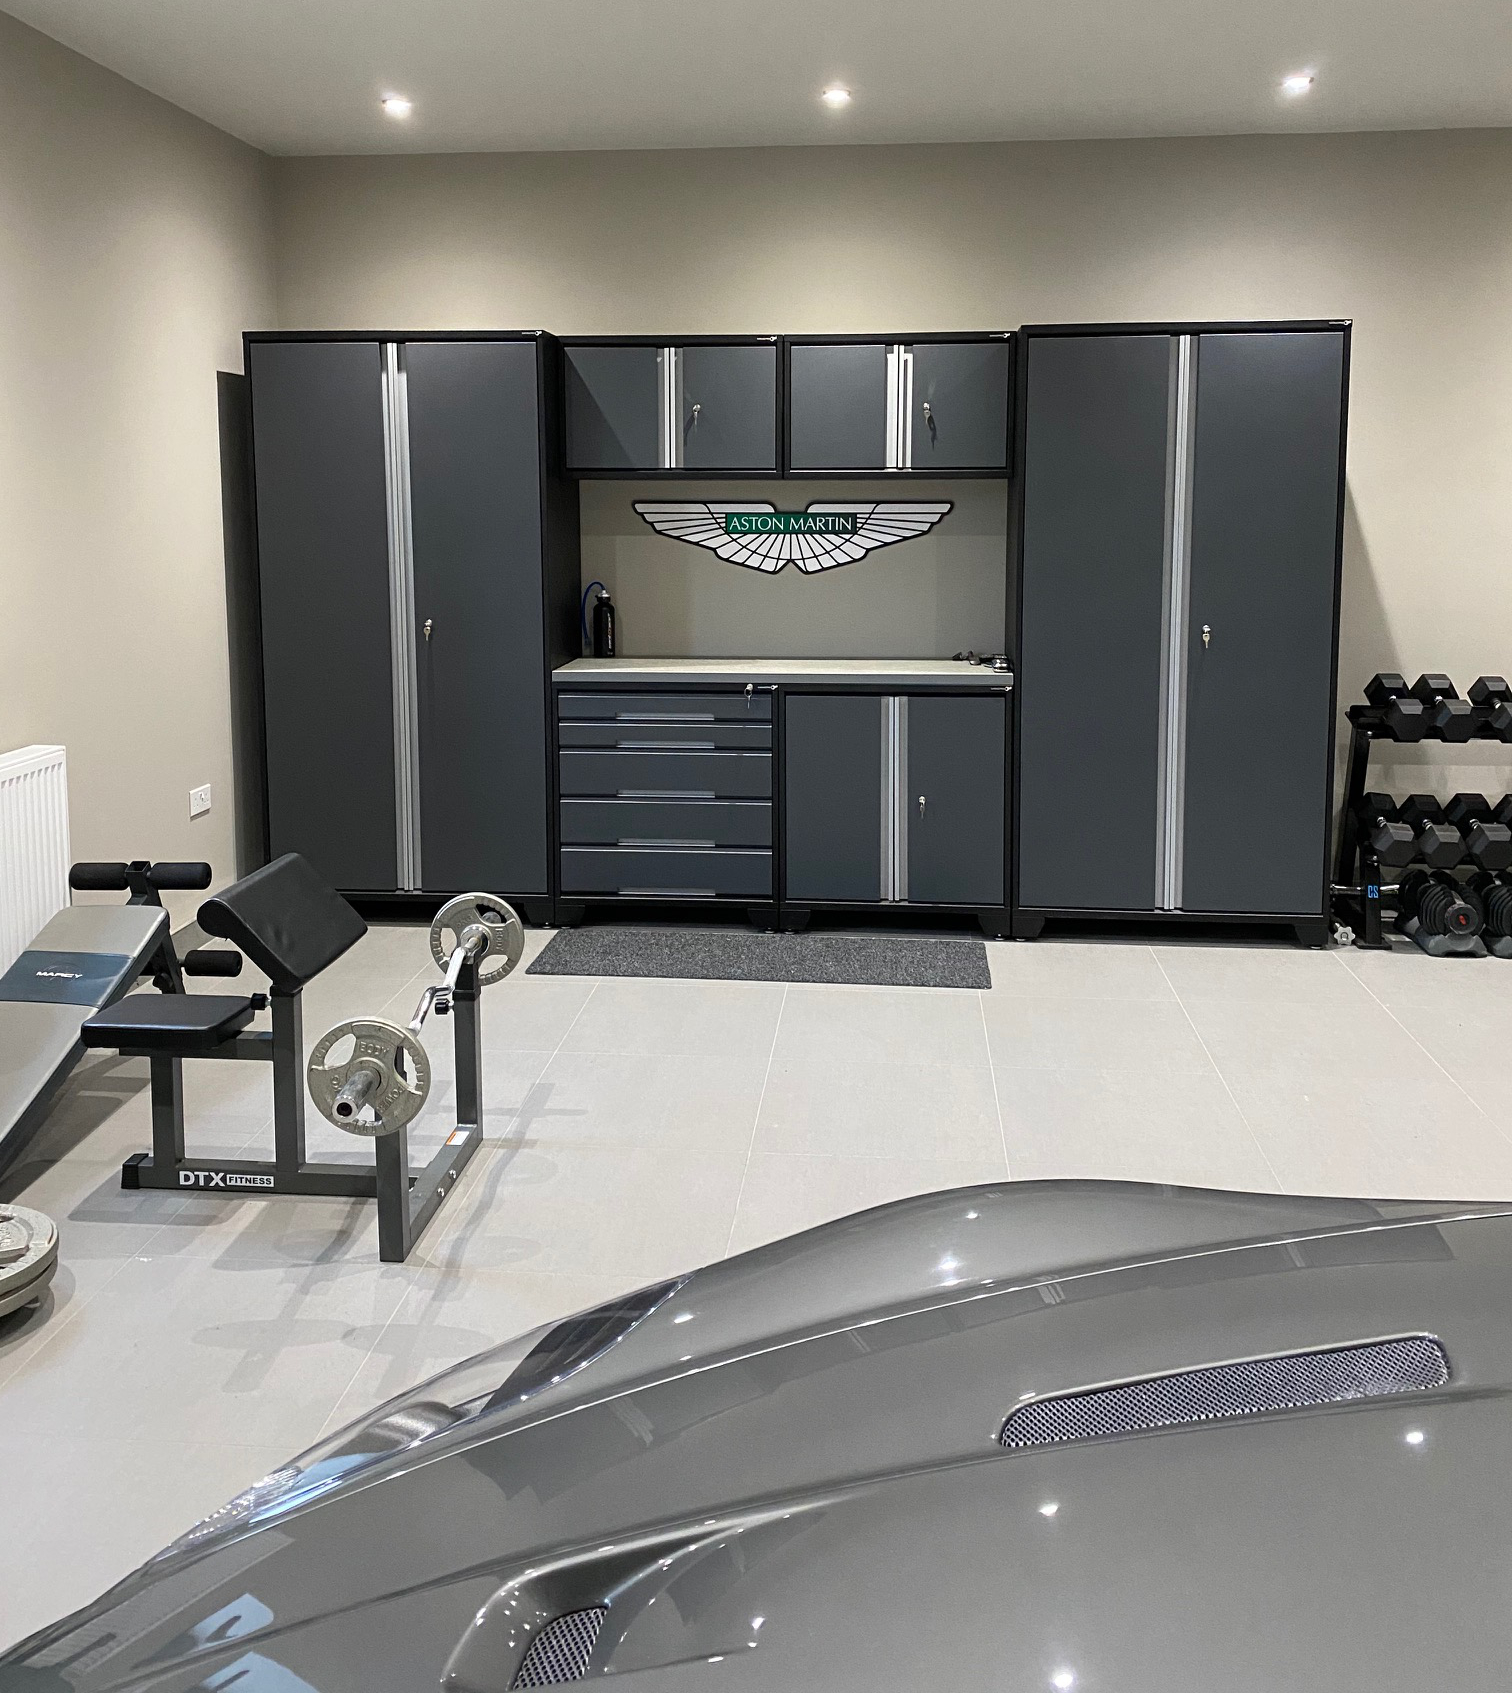 GaragePride Evoline cabinets in a customer's newly built garage housing his Aston Martin.